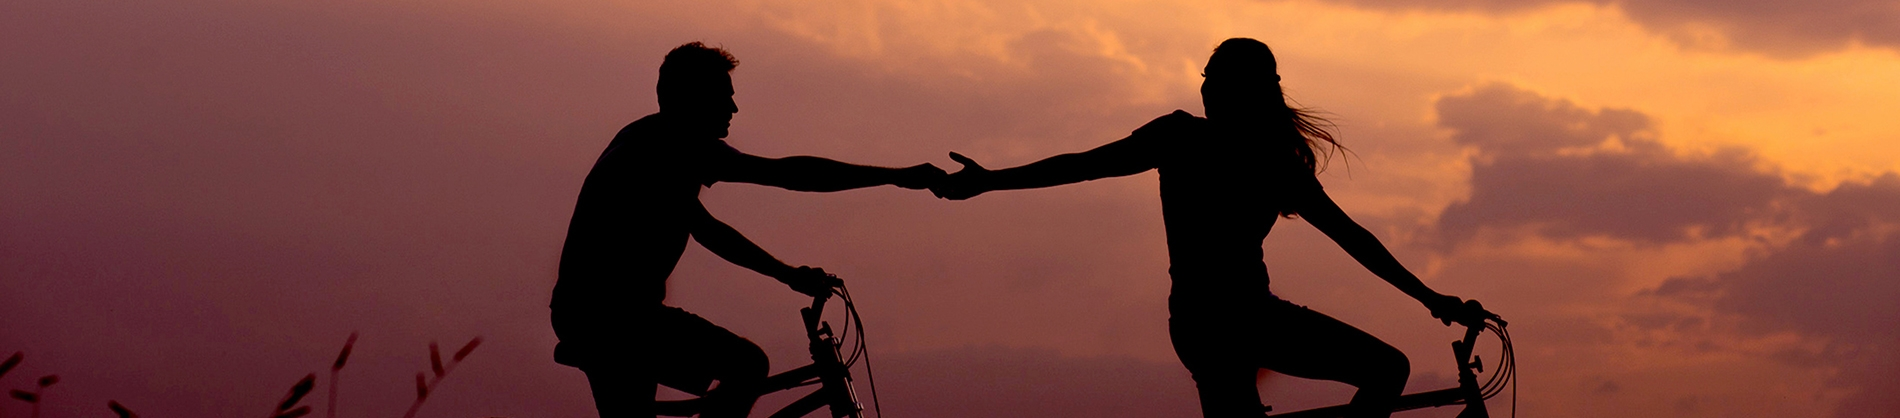 Silhouettes of two people on bikes holding hands with a sunset behind them